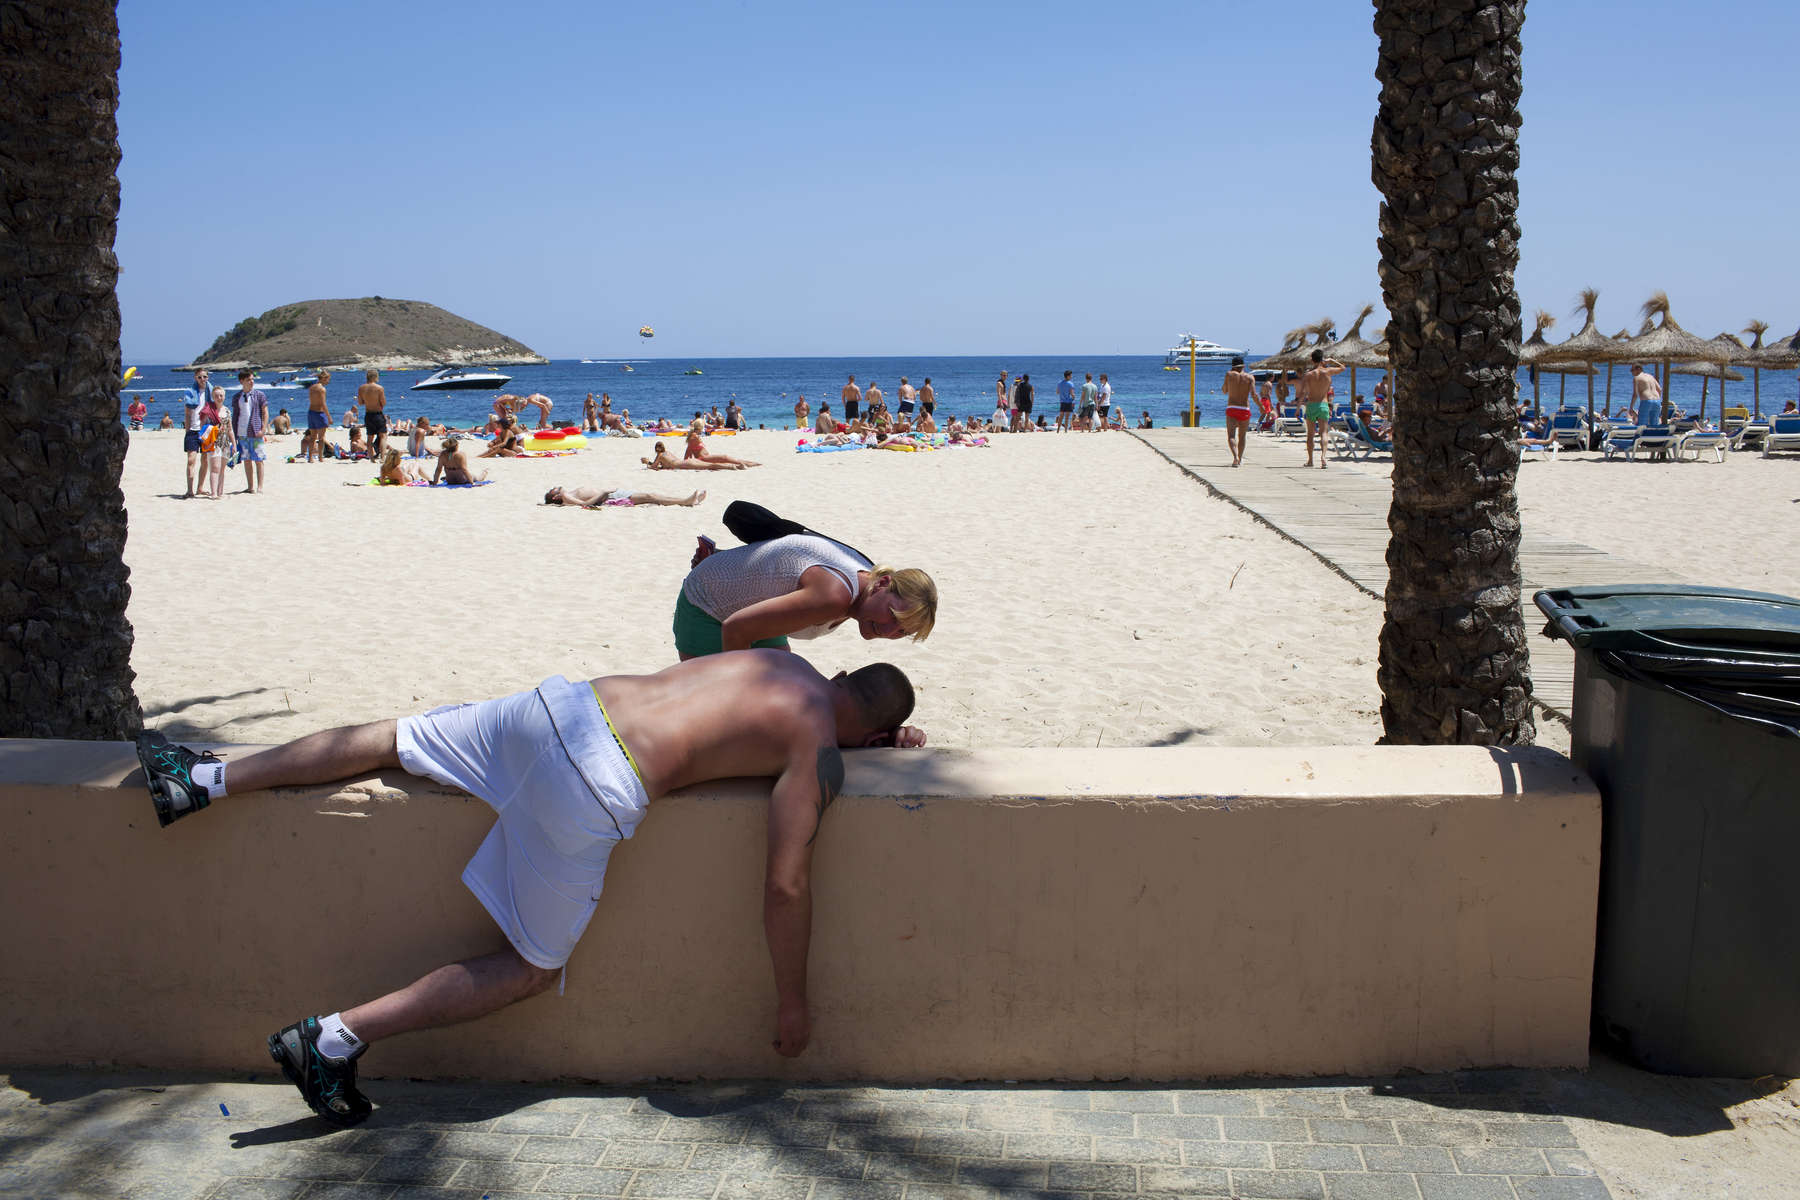 15:08 A Scottish woman checks on the well being of a British man slumped on a wall next to Magaluf beach, Majorca.